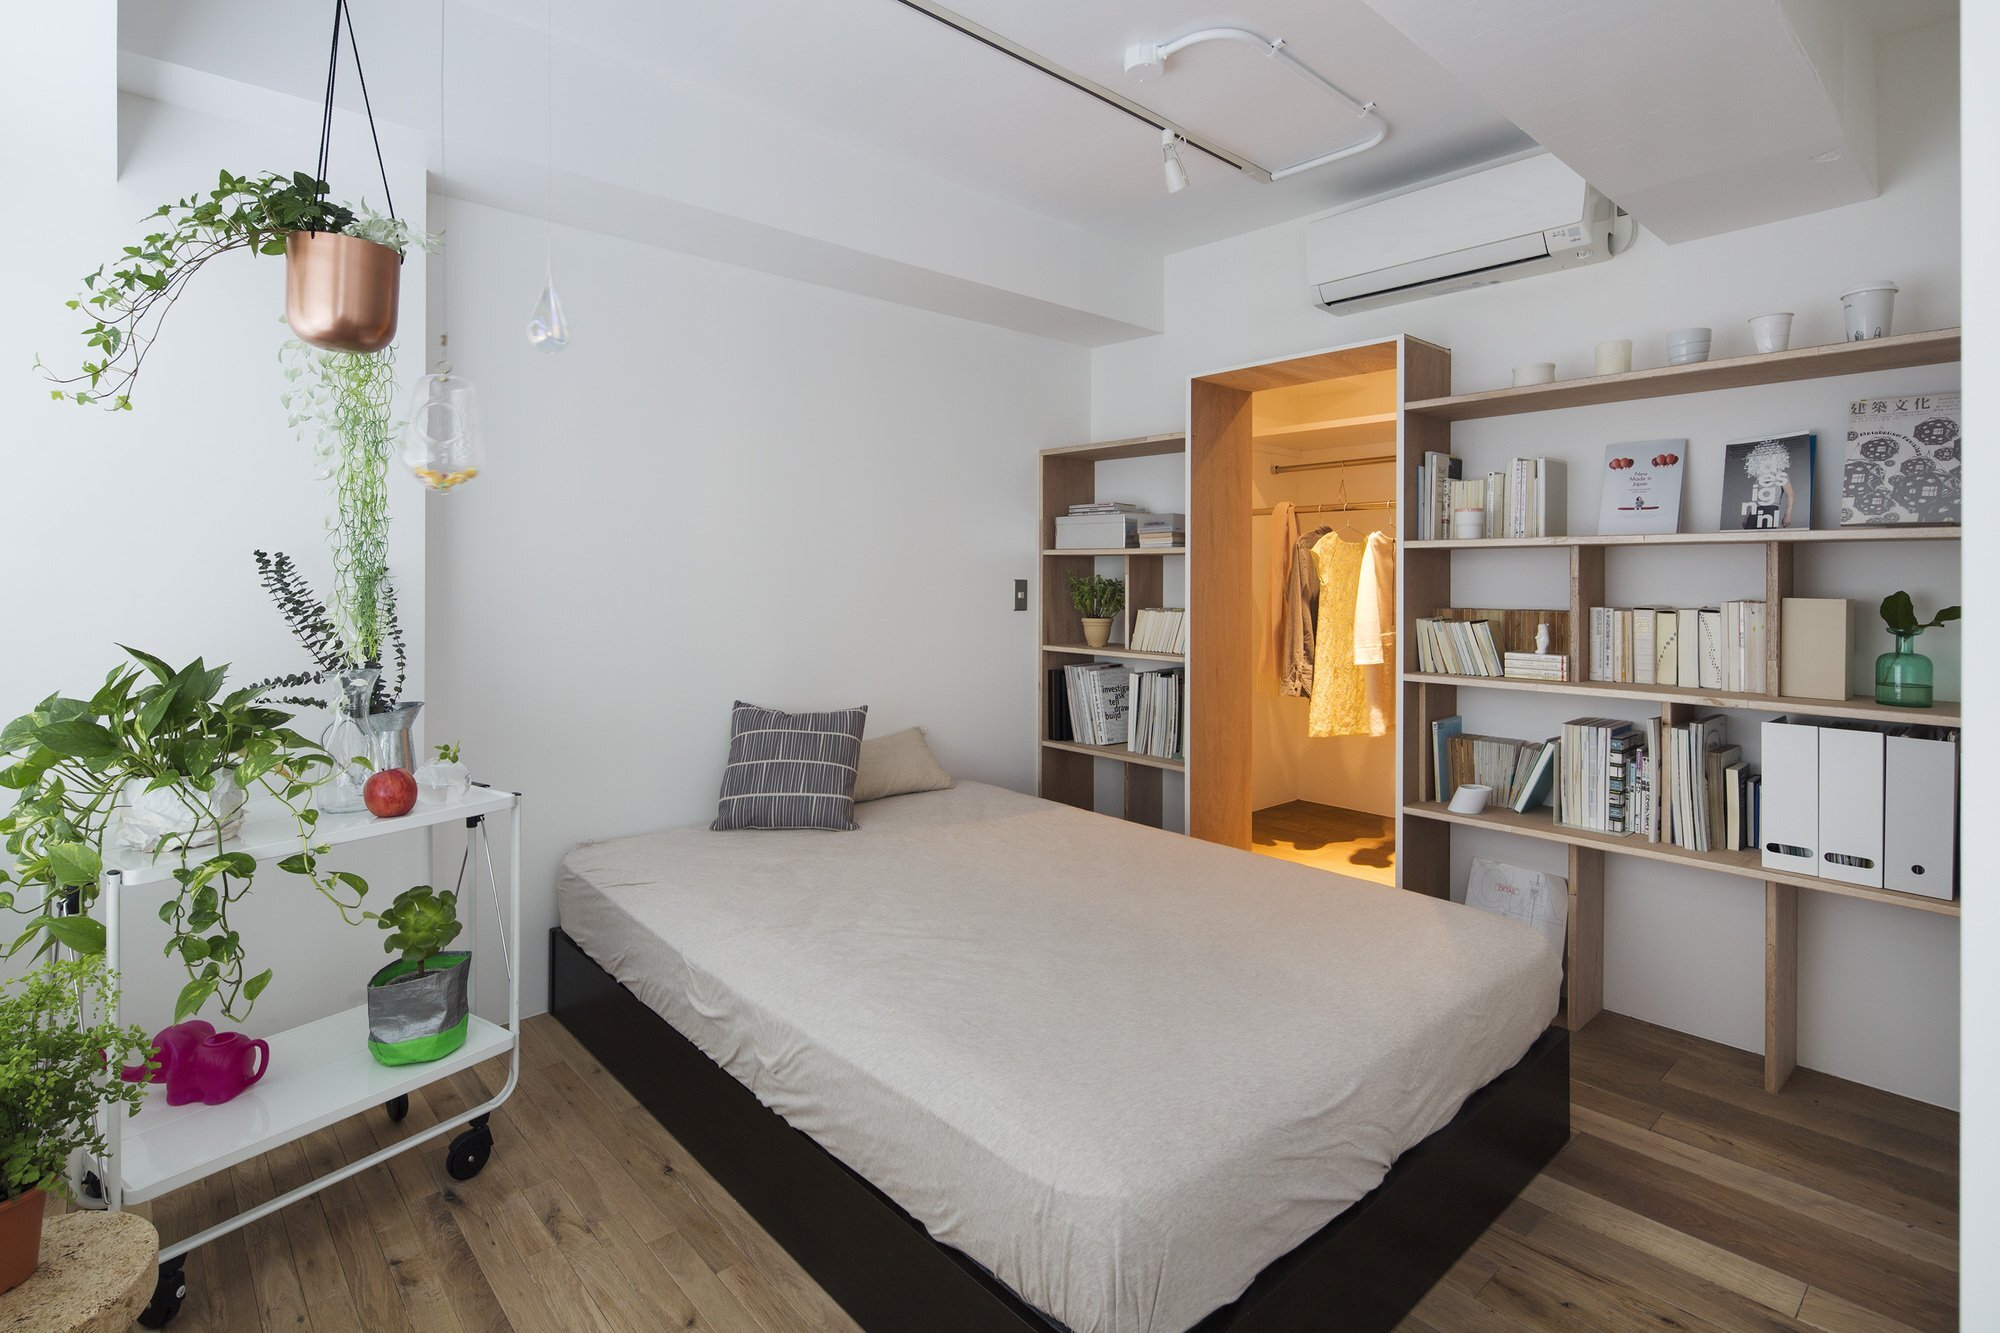 Opera - Taka Shinomoto and Voar Design Haus - Small Apartment in Tokyo - Bedroom - Humble Homes